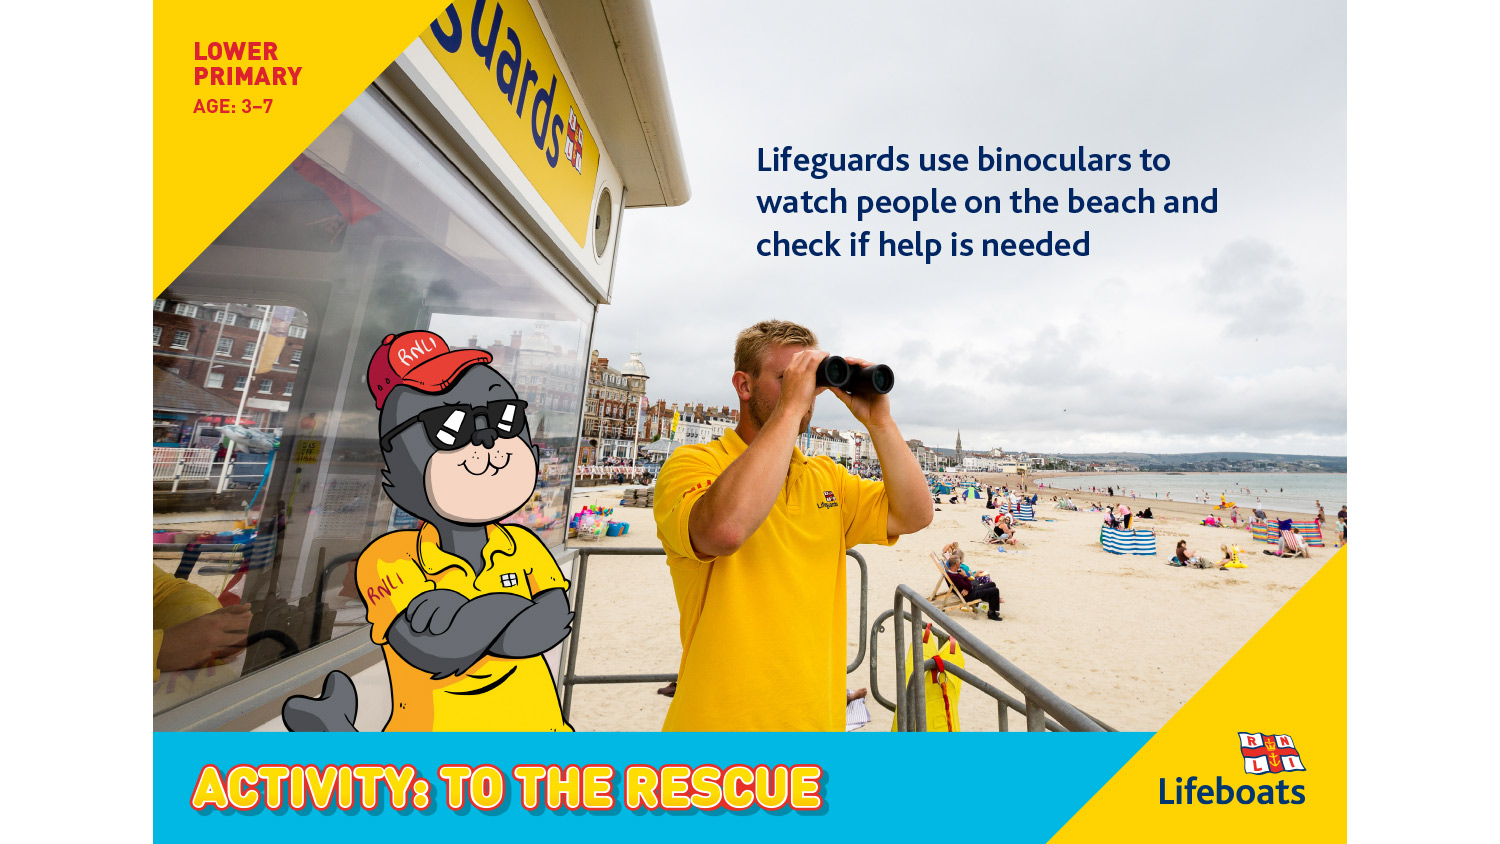 RNLI To The Rescue activity slides